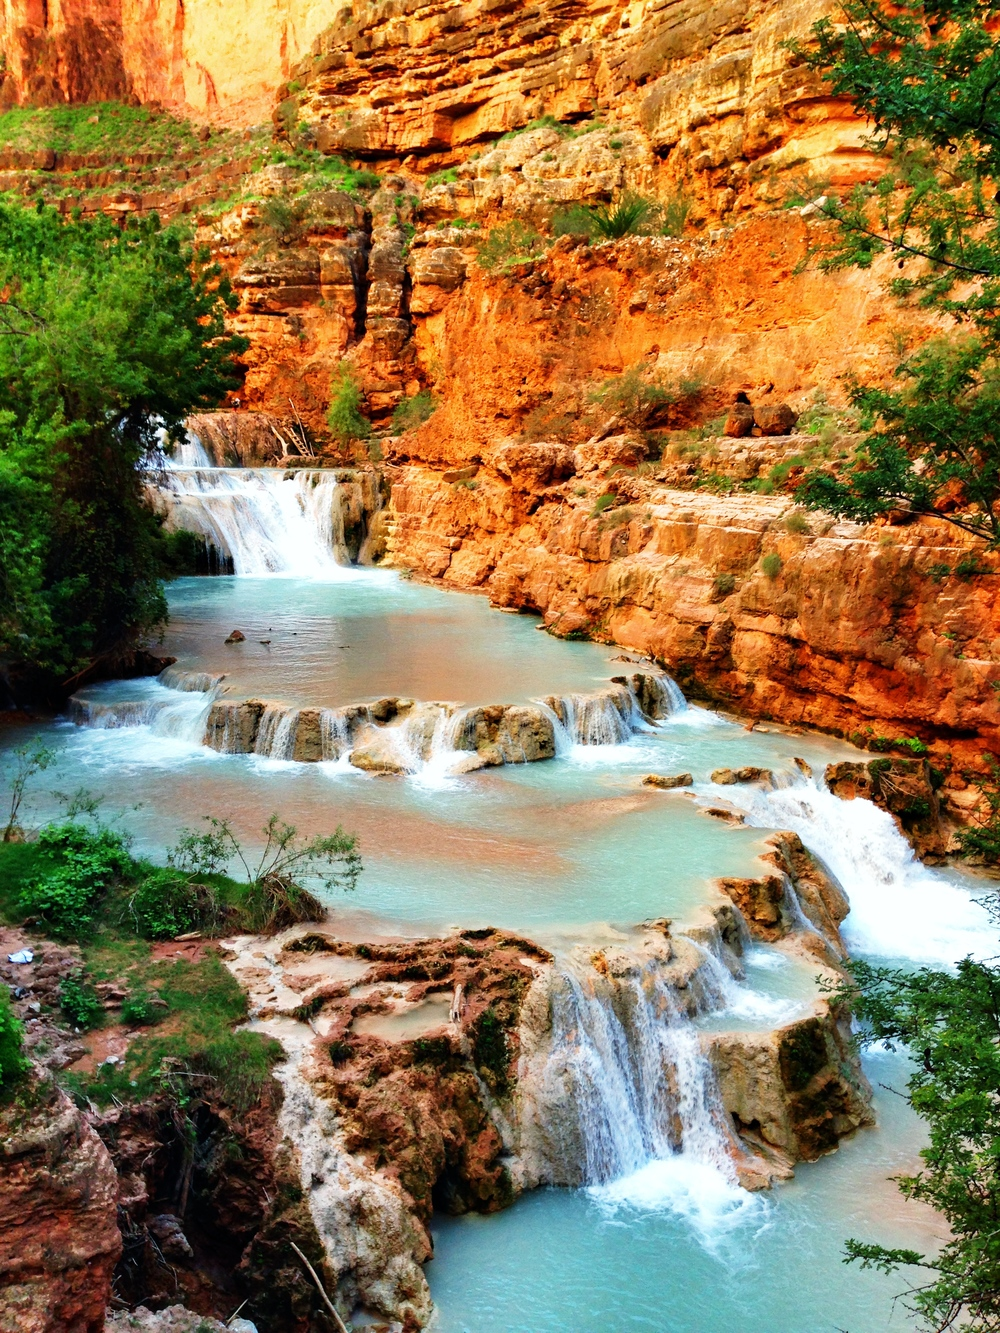 havaupai arizona desert waterfall oasis thisworldexists this world exists michelle torres